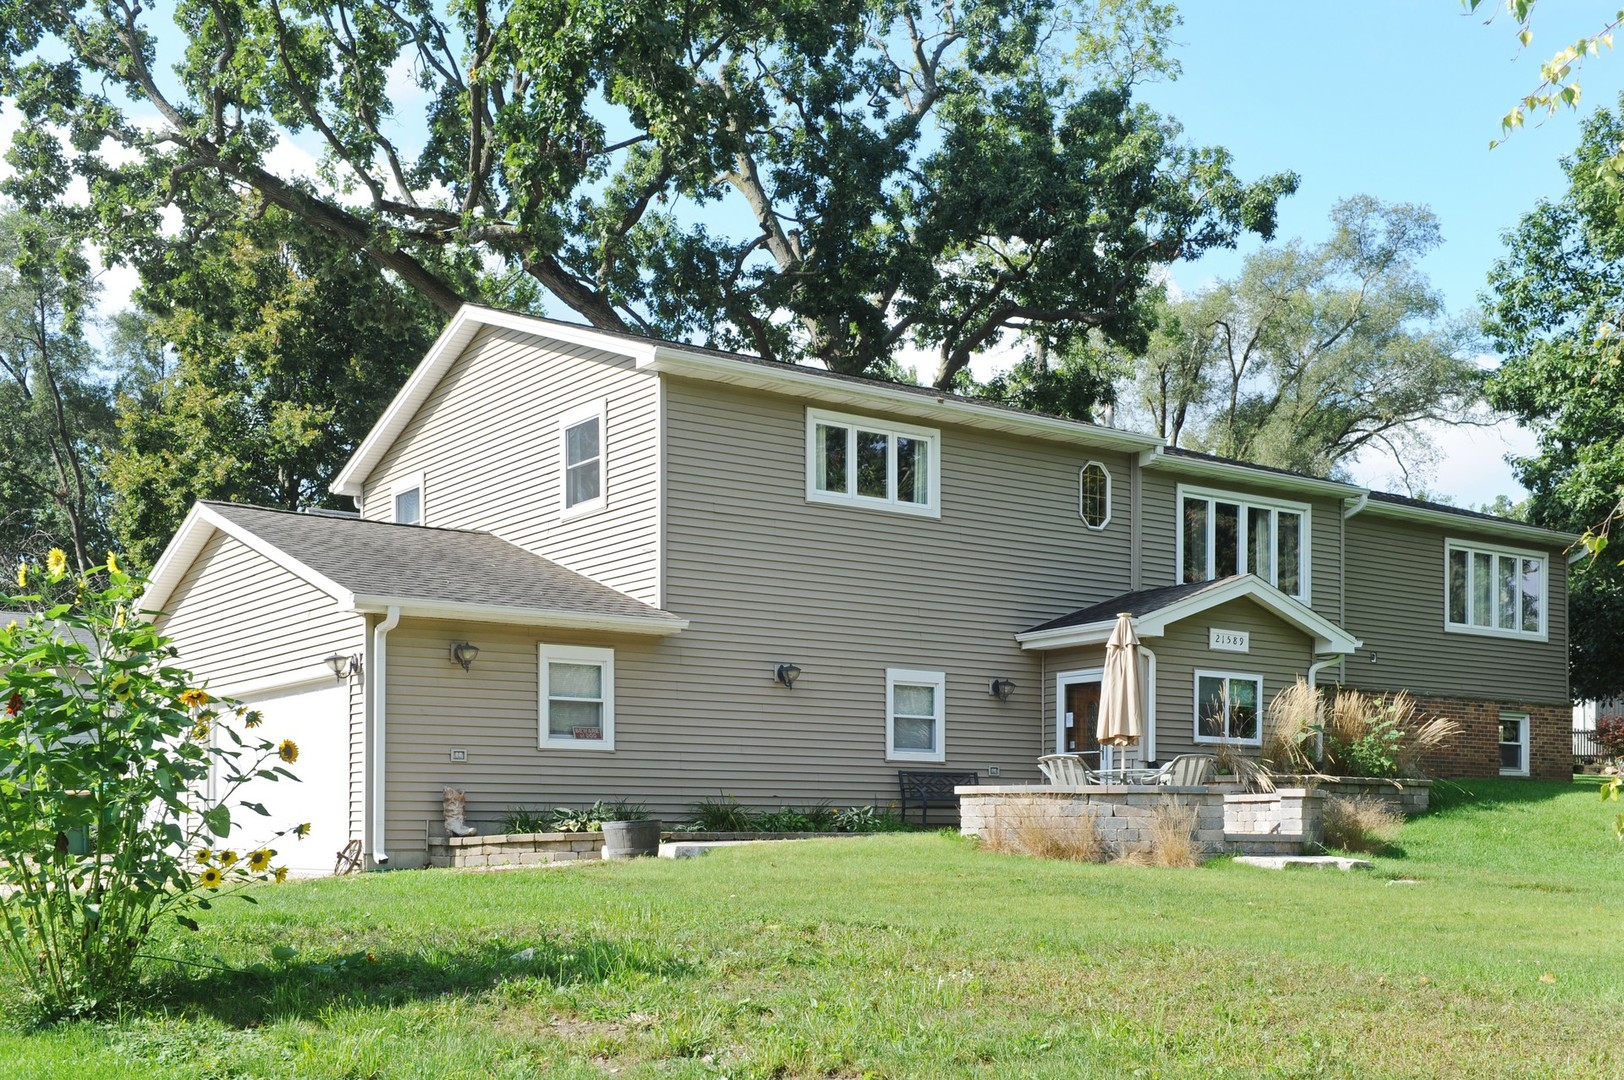 21589 West Maurine Drive, Lake Villa, Illinois 60046